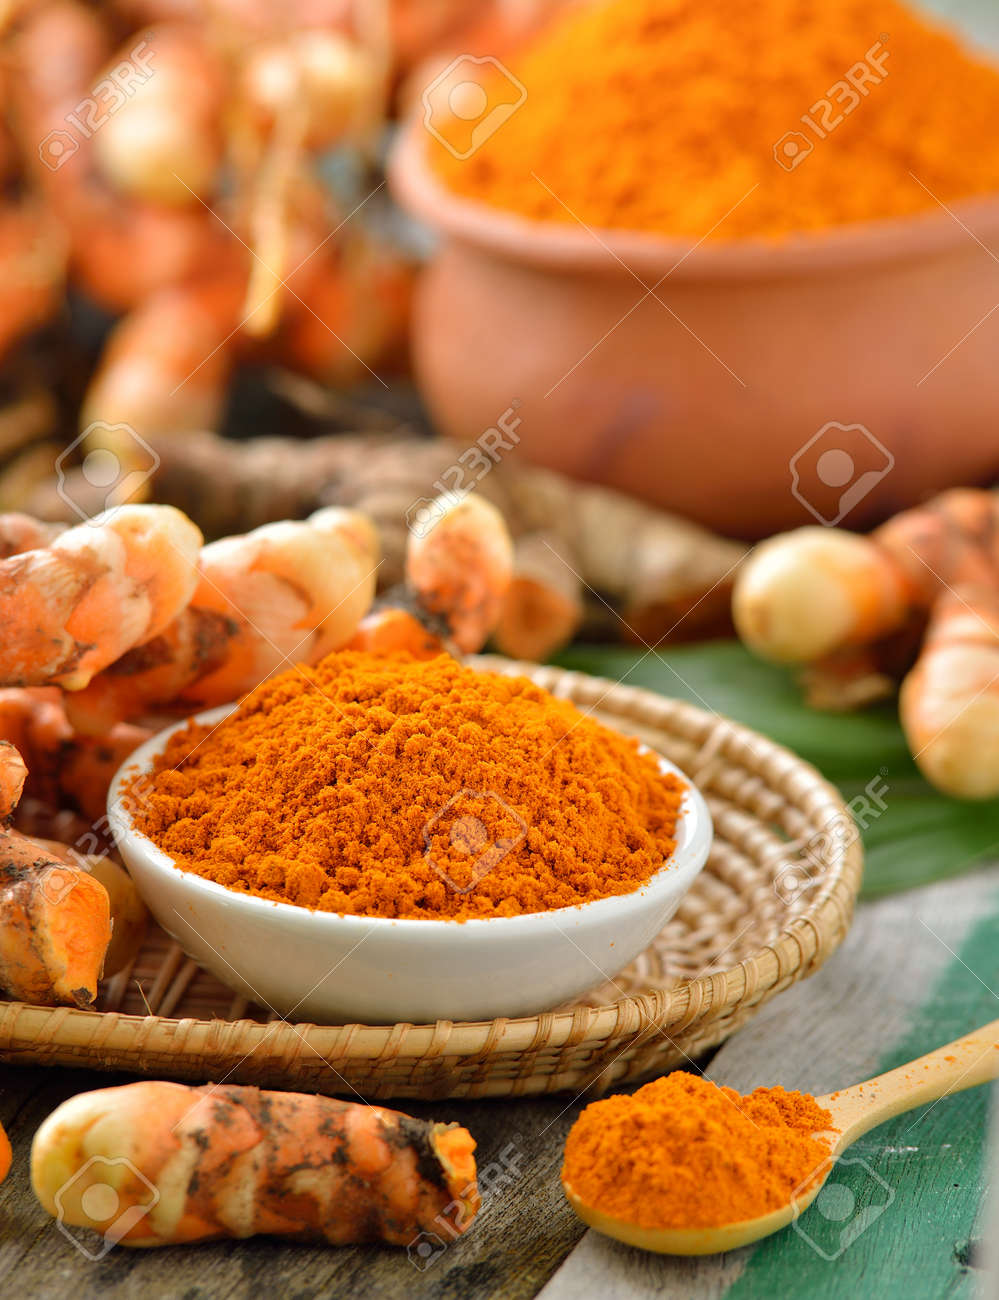 turmeric roots in the basket on wooden table - 47729406